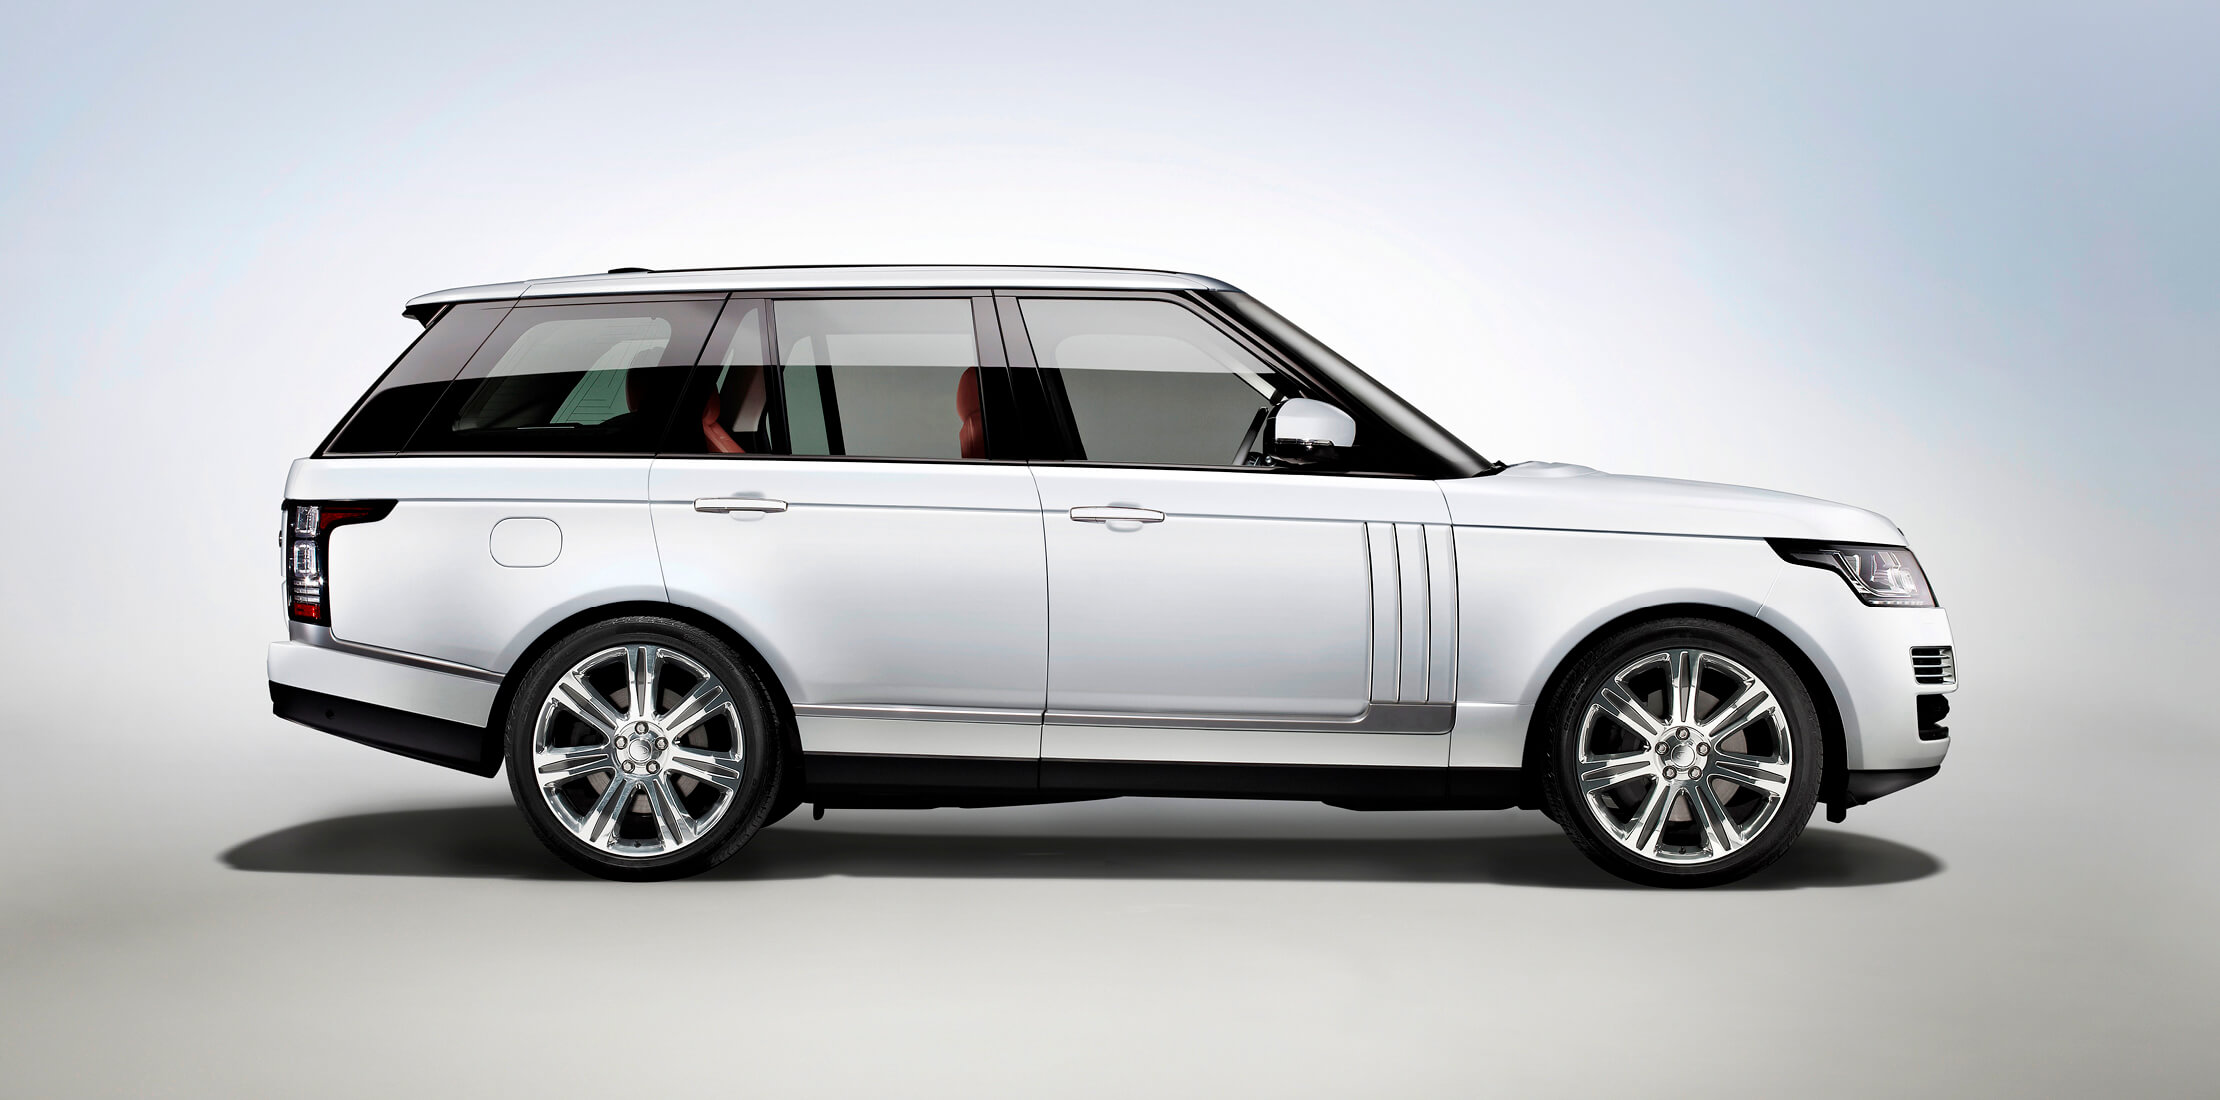 Profile shot of a white Land Rover Range Rover, with red leather interior on a blue and grey background